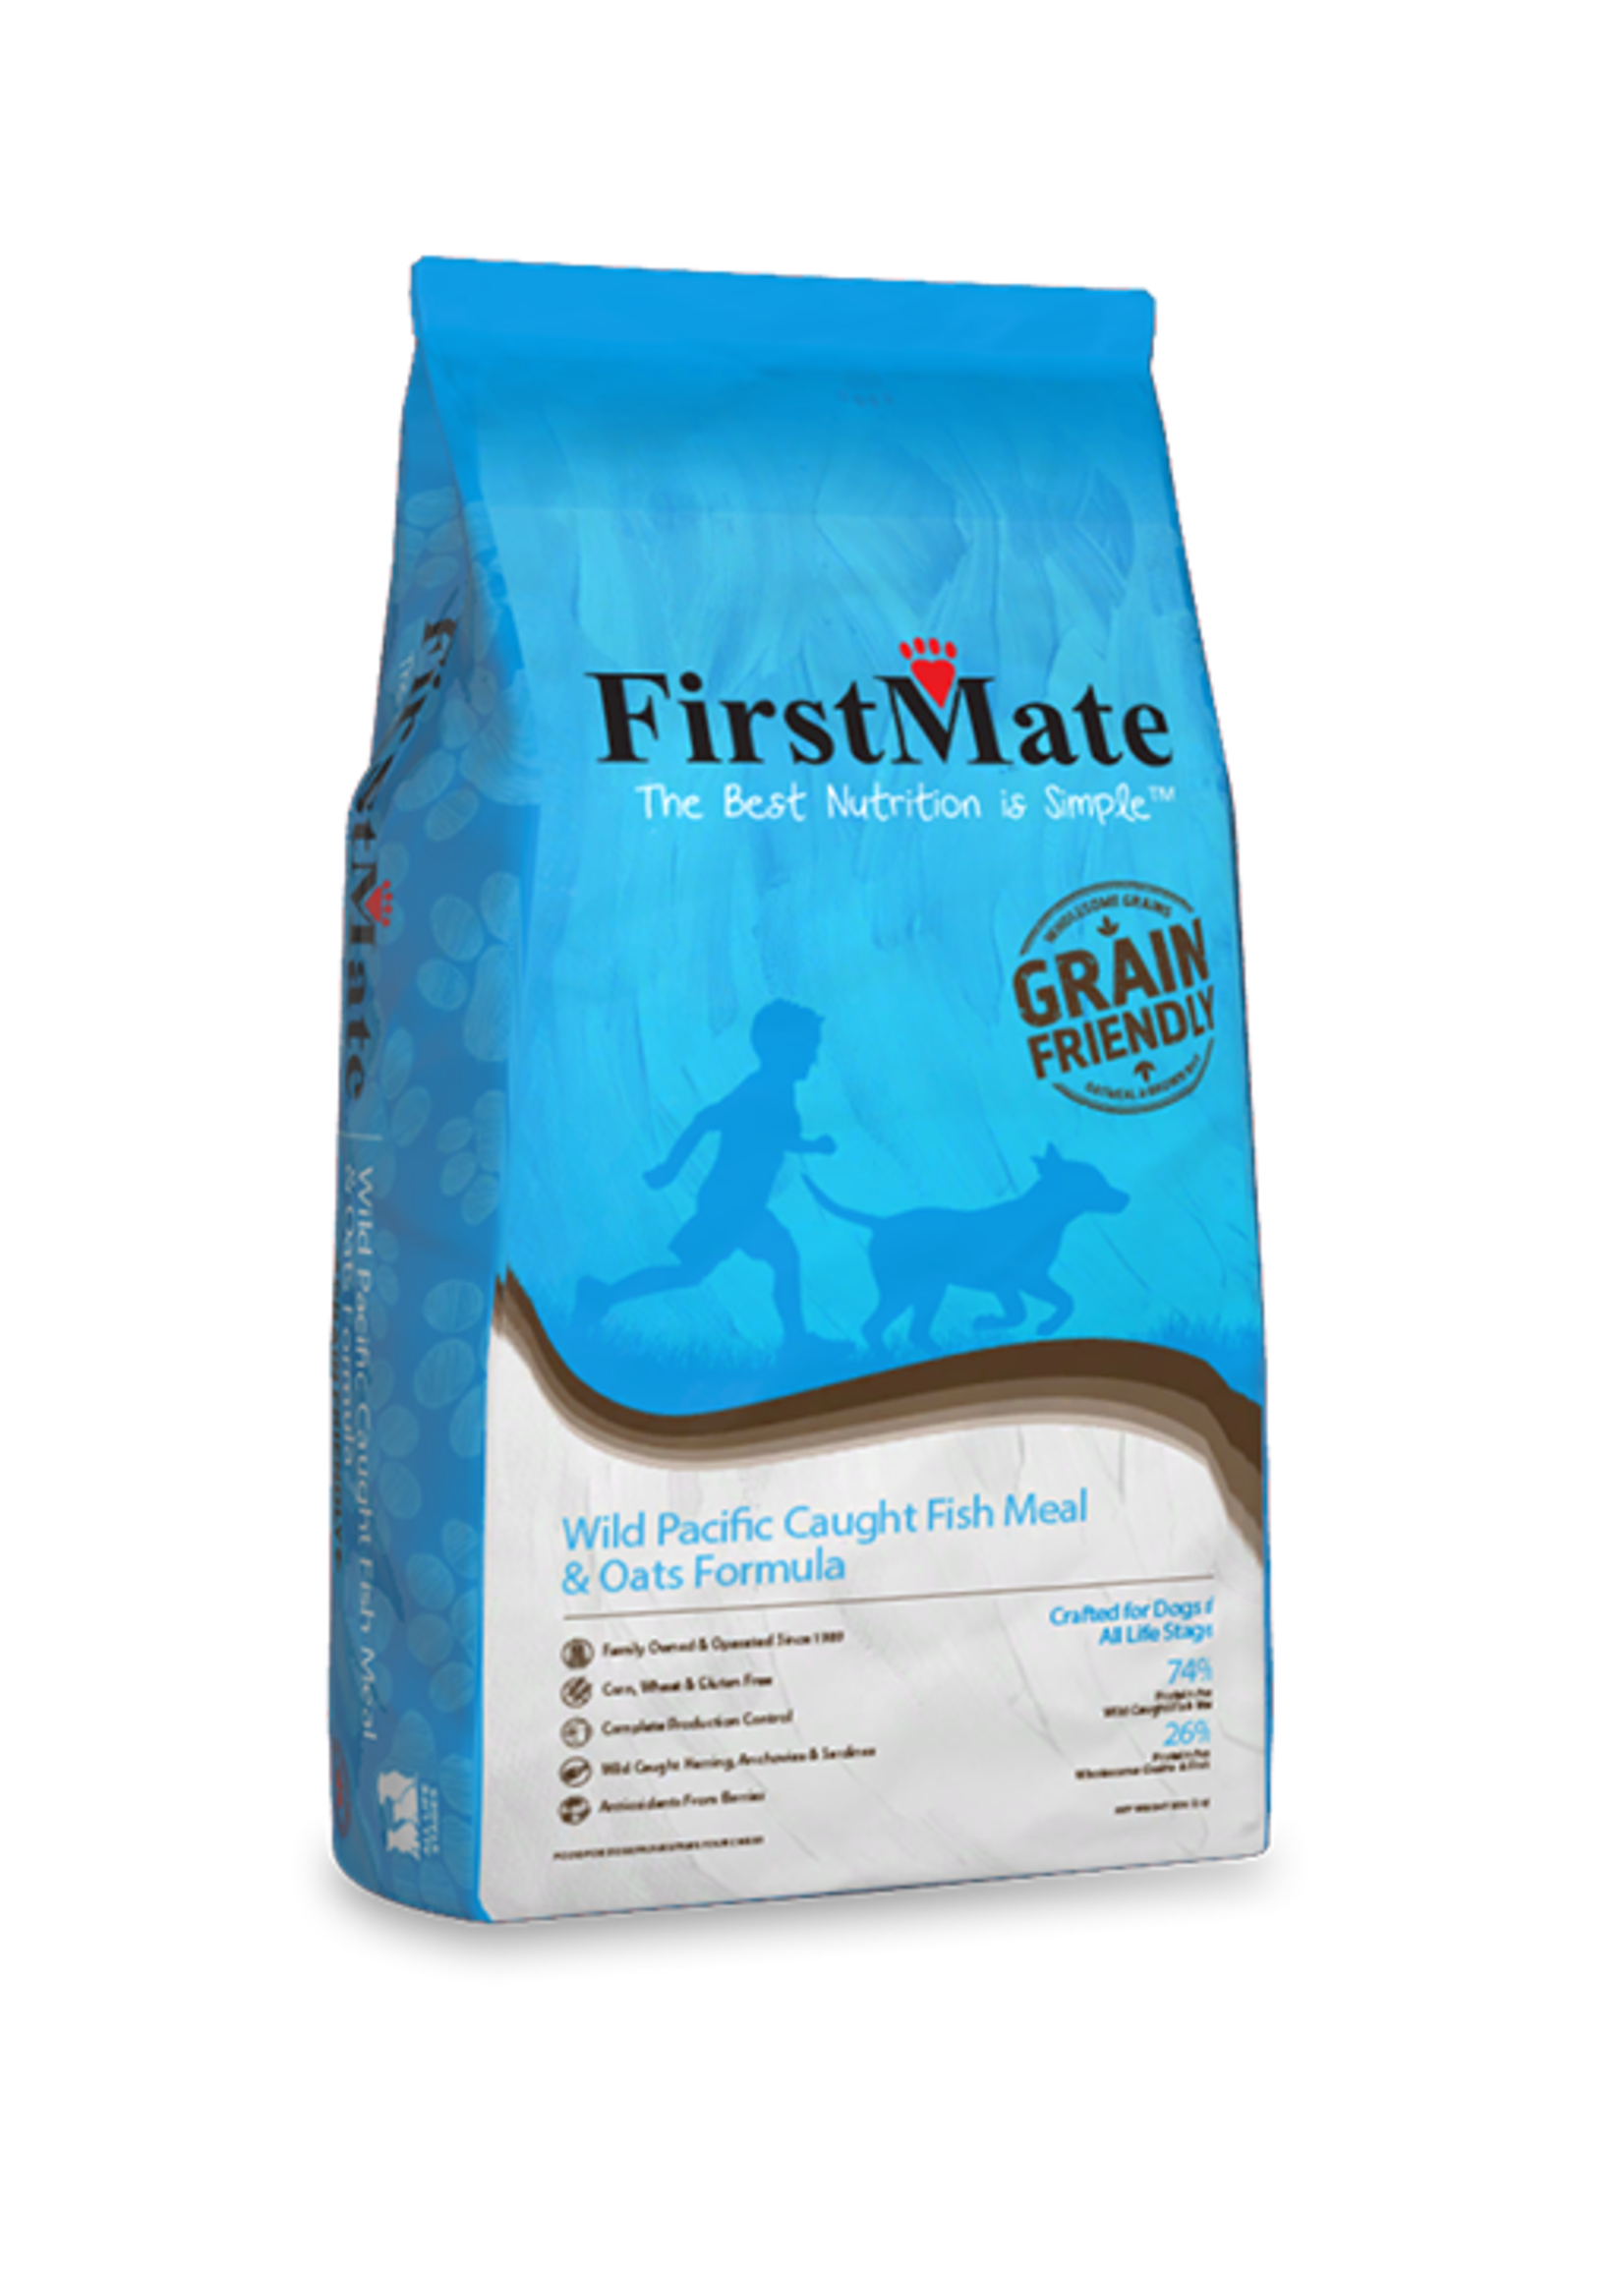 FirstMate FirstMate Wild Pacific Caught Fish Meal & Oats Formula 25lbs